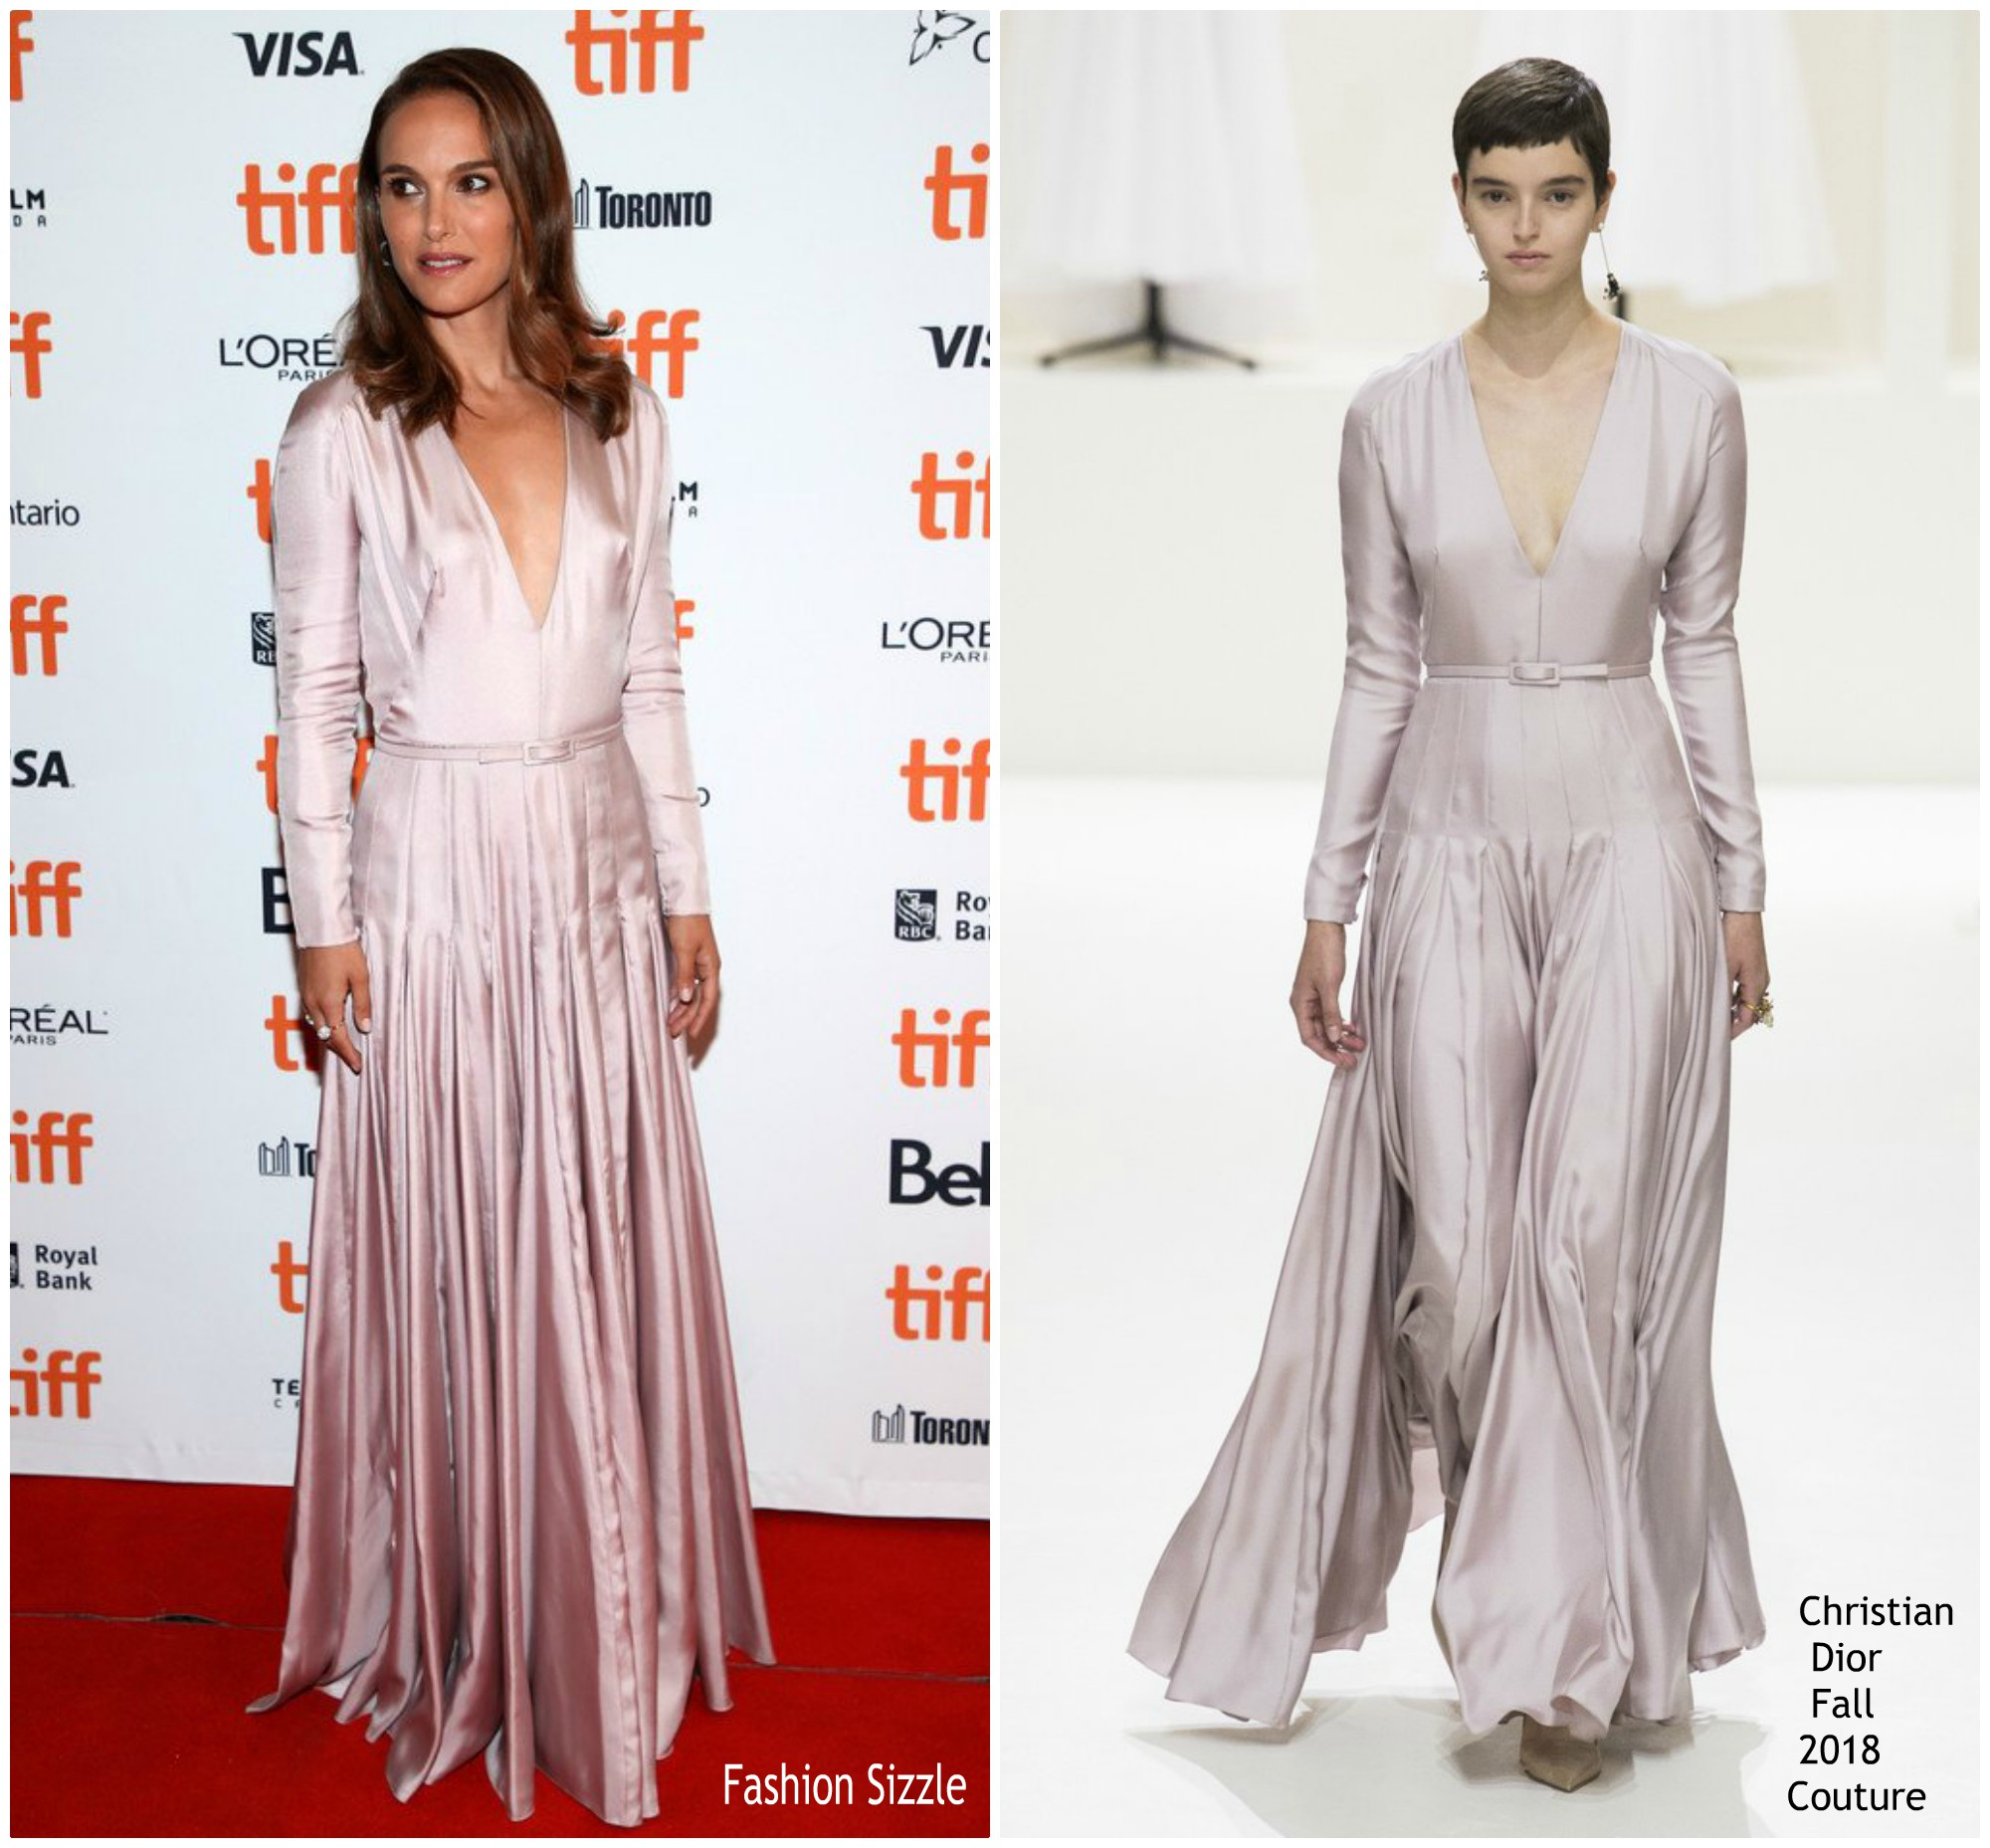 natalie-portman-in-christian-dior-couture-vo-lux-toronto-international-film-festival-premiere